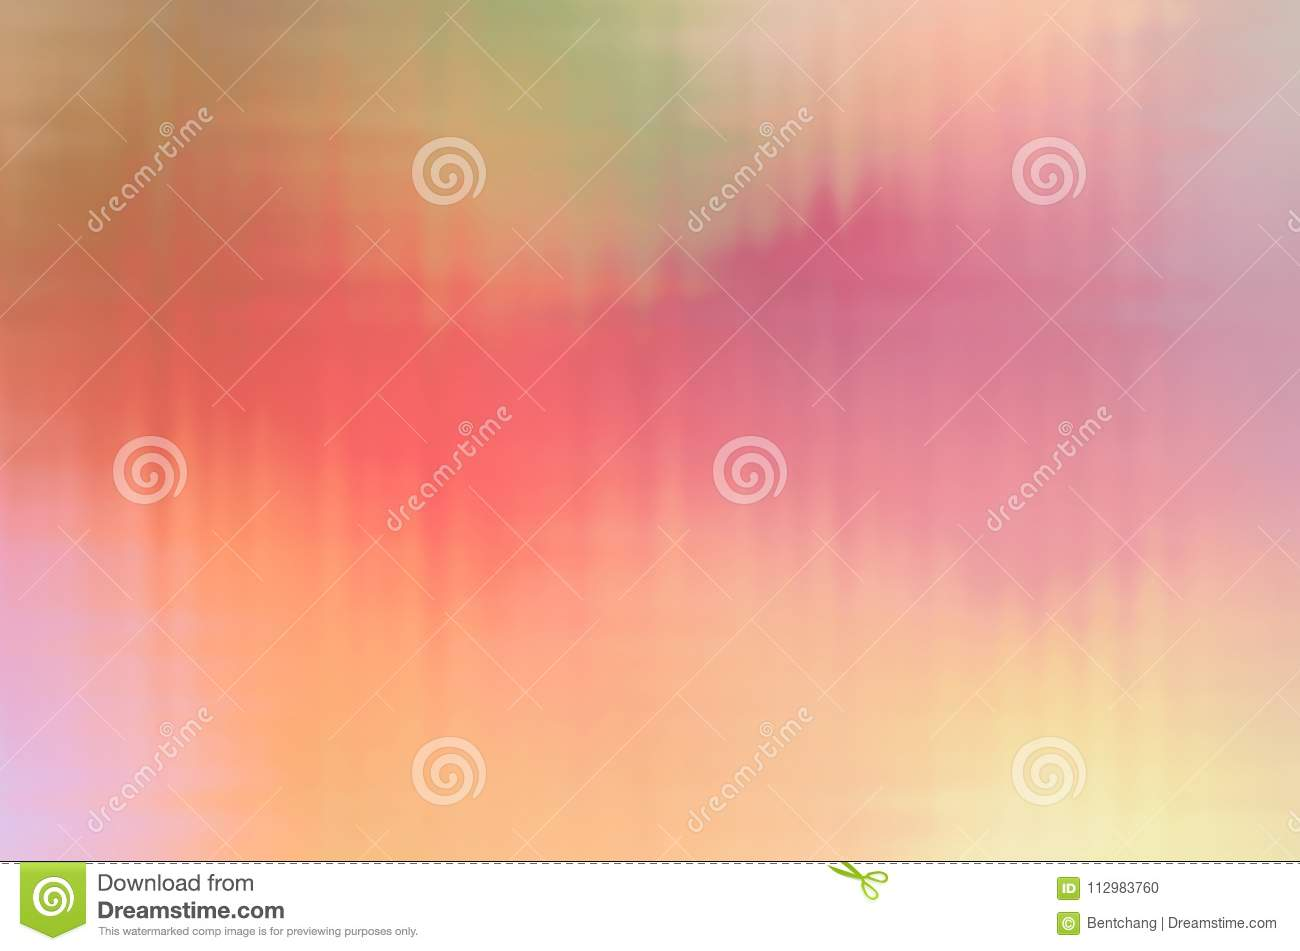 Conceptual background motion for design or texture. Blur, light, bubble, art & artistic.